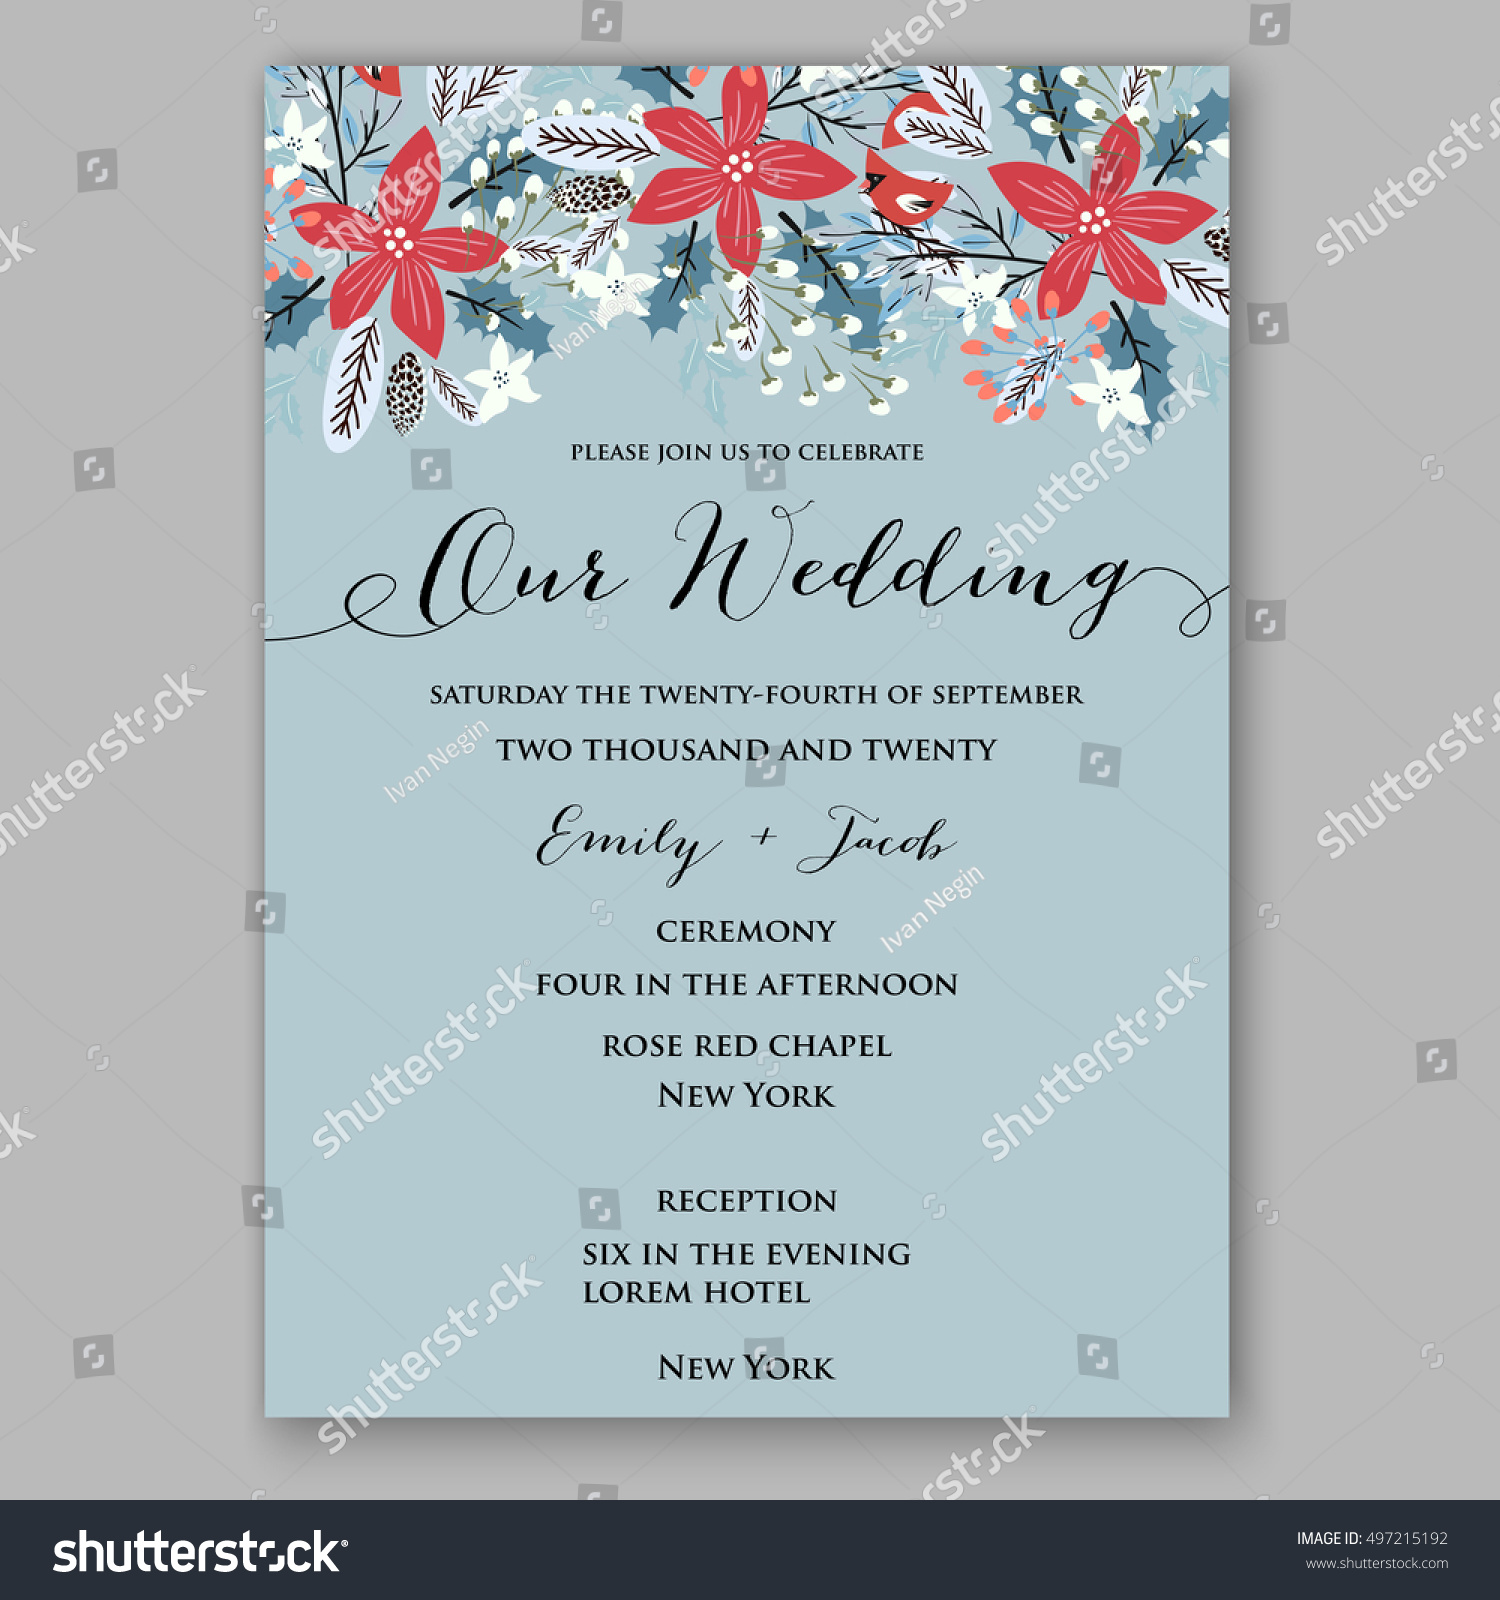 winter wedding invitation i wish you a merry christmas and happy new year vintage christmas background